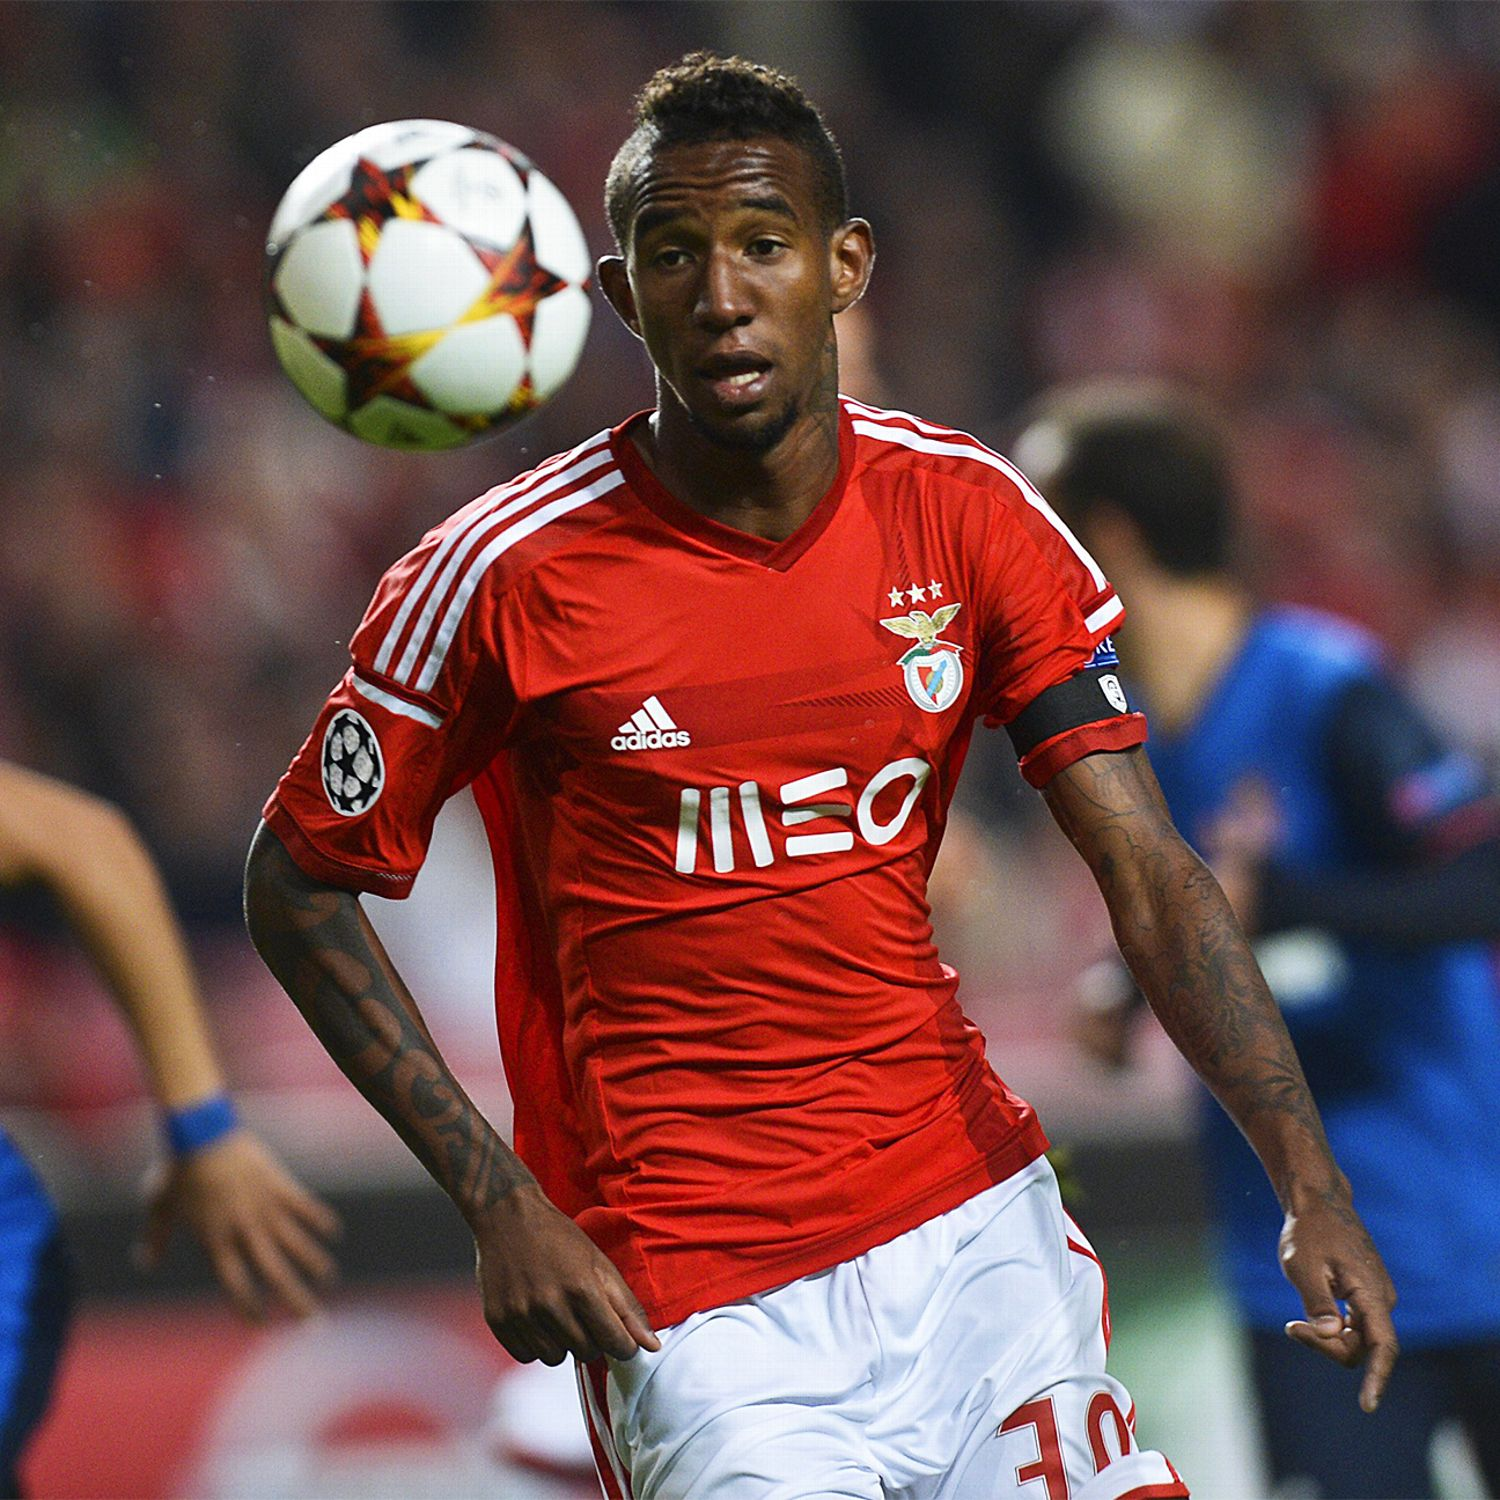 Anderson Talisca Replaces Injured Lucas Moura In Brazil